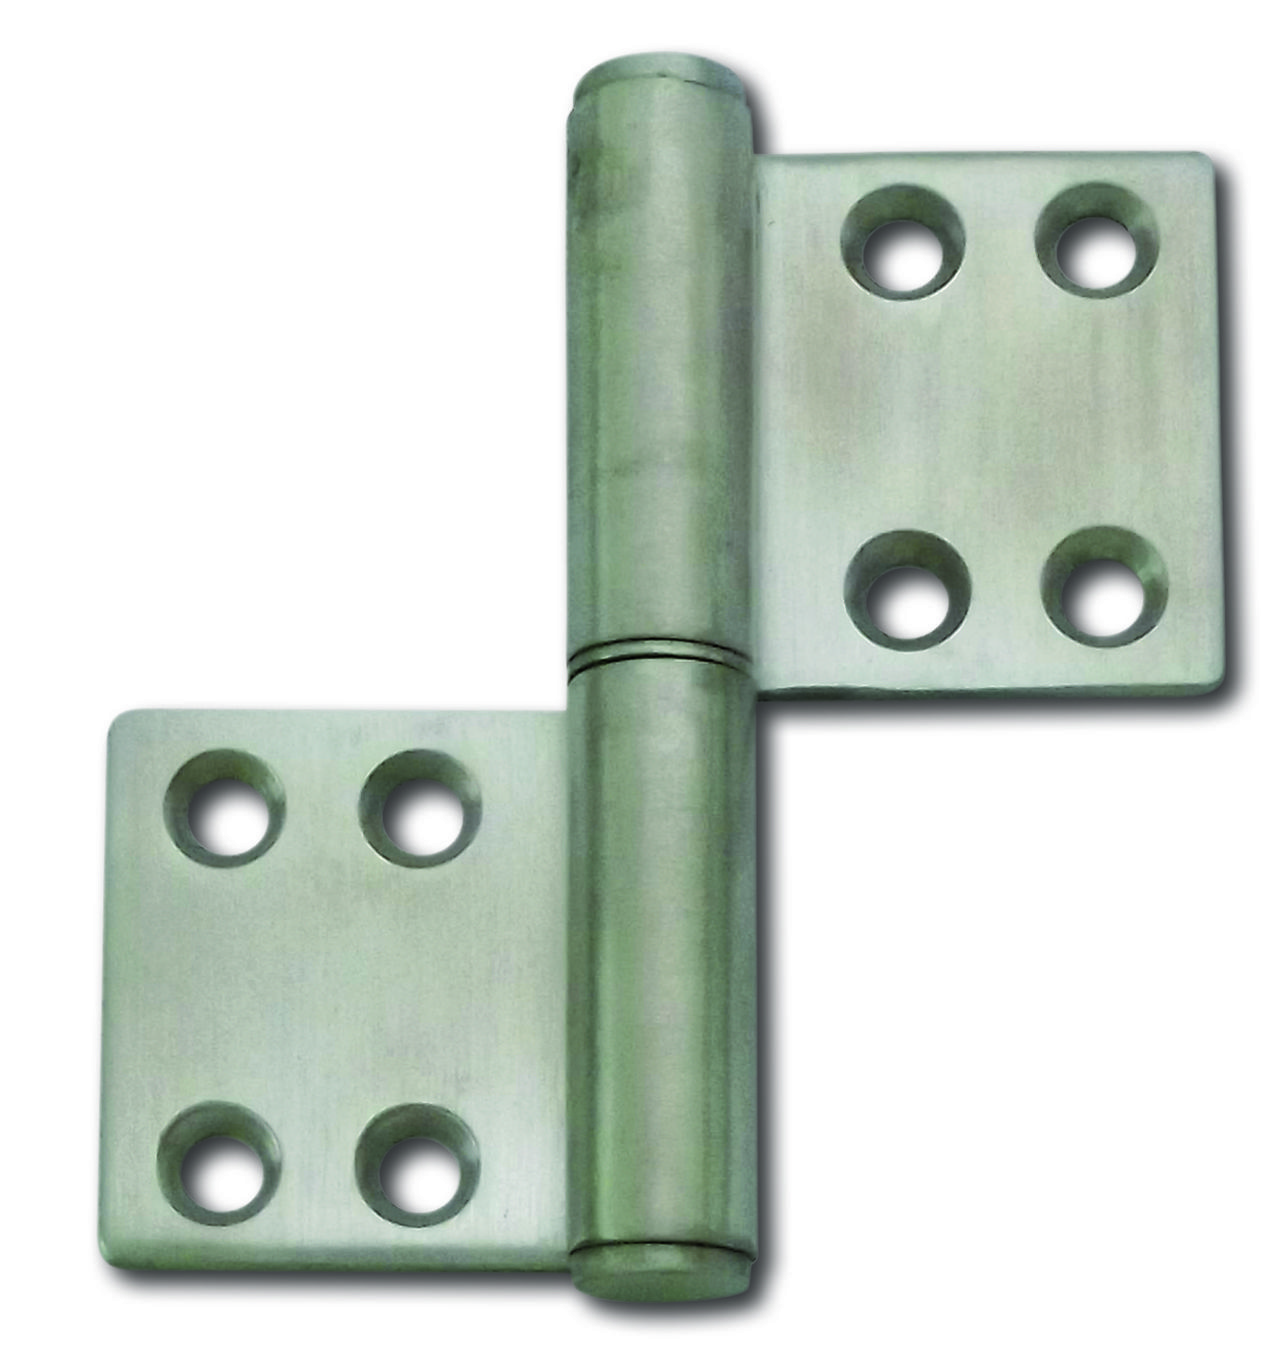 Flag Hinge Loose Pin Hinge Made Of Stainless Steel 304 Satin Polished For Removable Door Industri Metal Working Tools Shutters Exterior Metal Art Projects